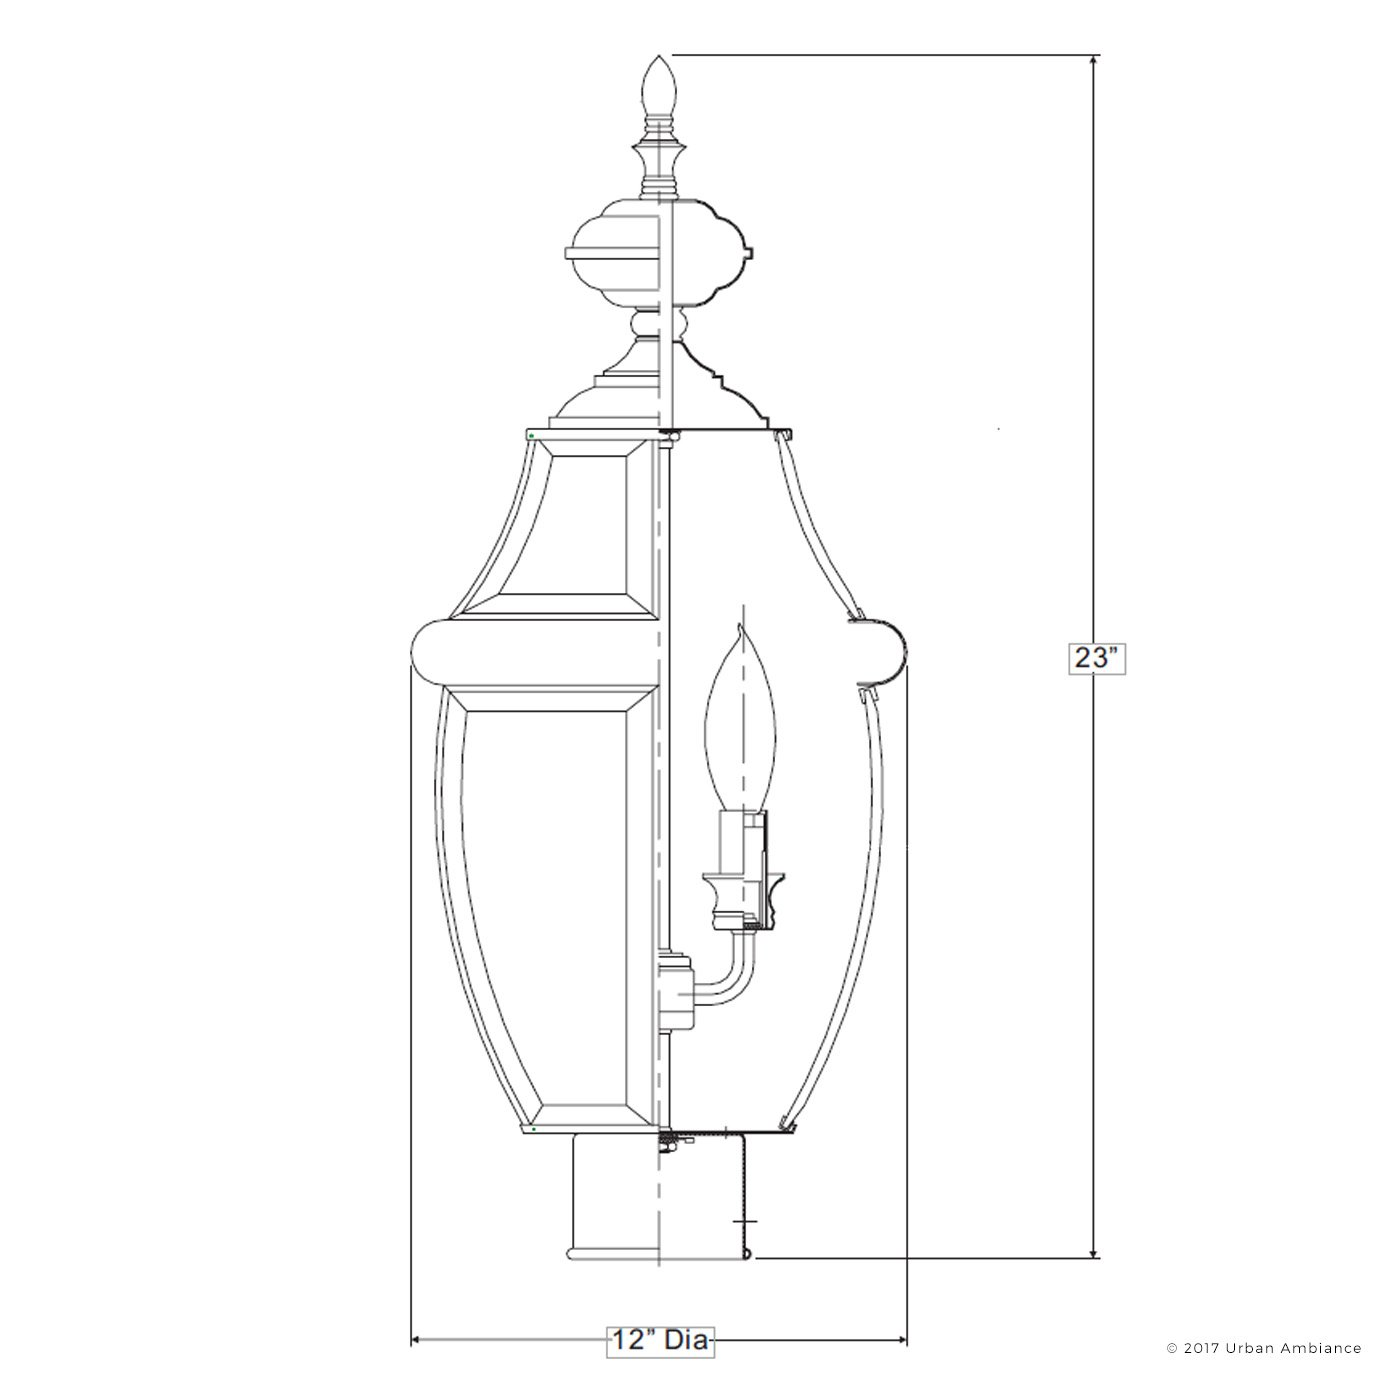 Luxury Colonial Outdoor Post Light, Large Size: 23''H x 12.5''W, with Tudor Style Elements, Versatile Design, High-End Black Silk Finish and Beveled Glass, UQL1150 by Urban Ambiance by Urban Ambiance (Image #6)